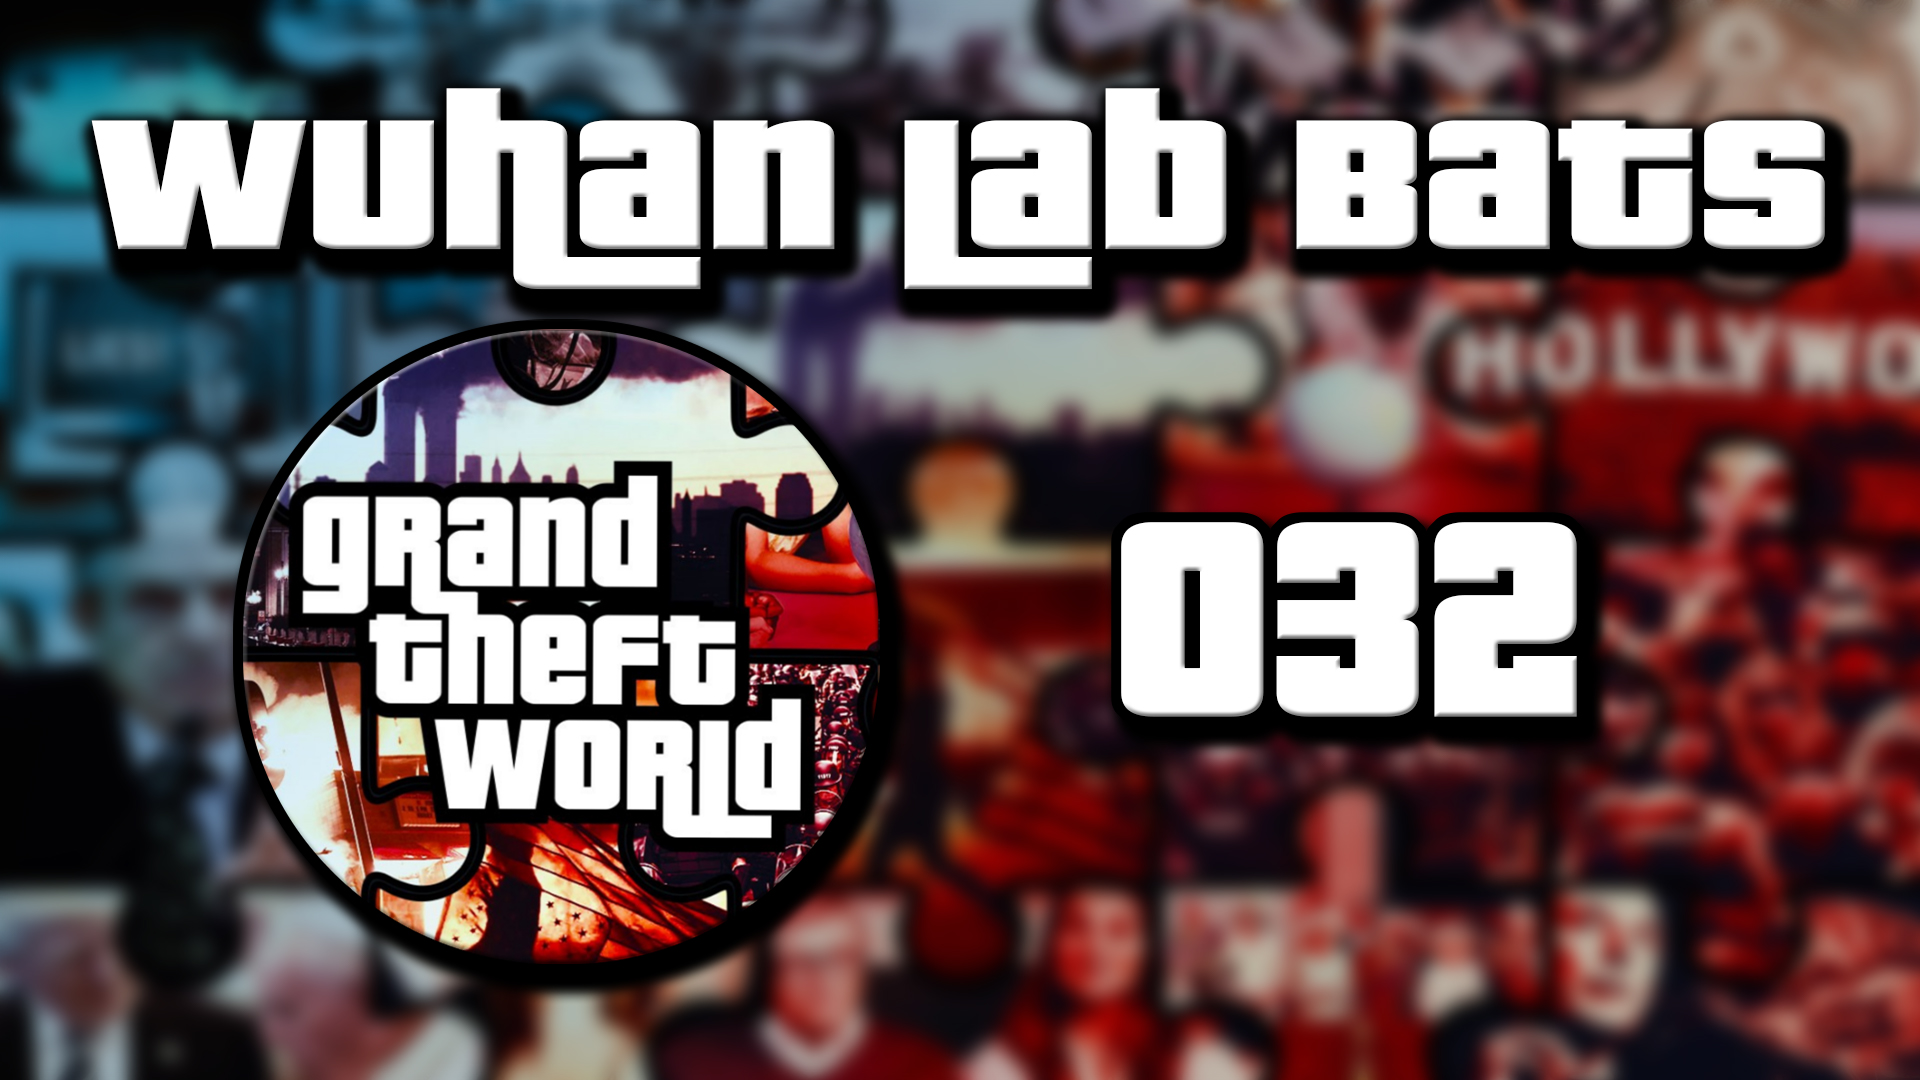 Grand Theft World Podcast 032 | Wuhan Lab Bats